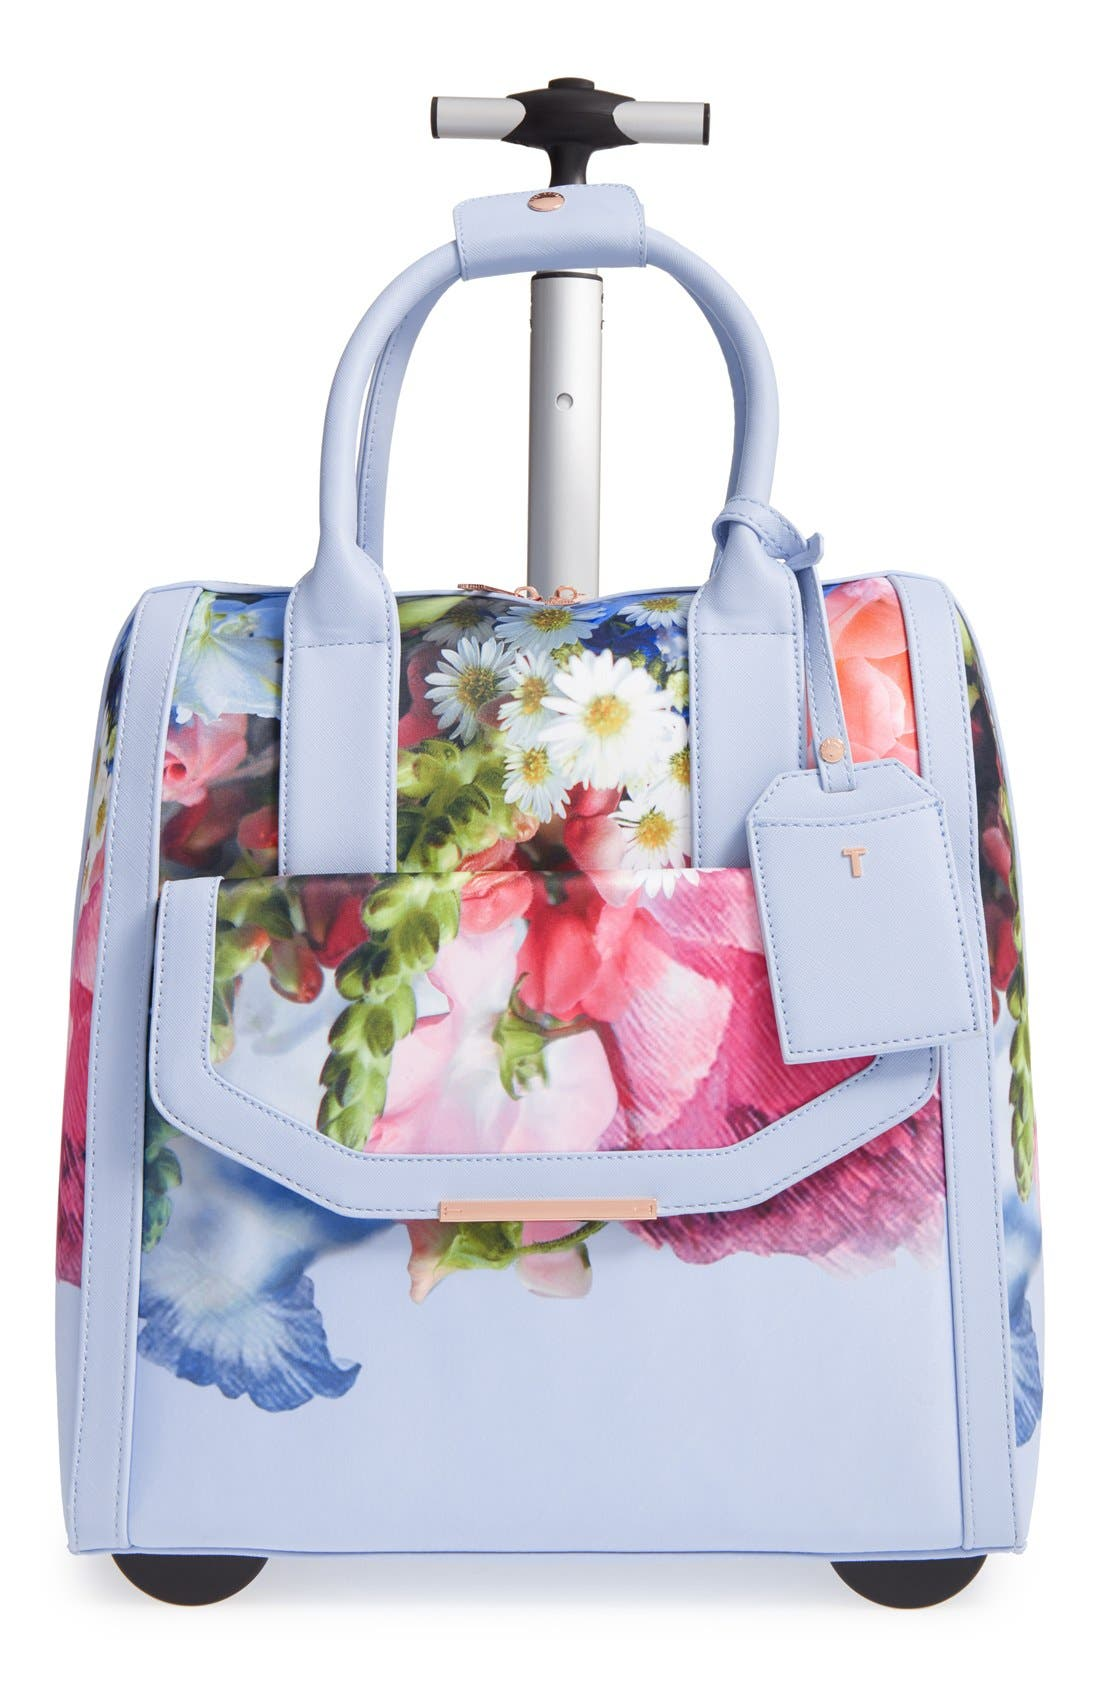 TED BAKER LONDON 'Vickey Floral Focus' Travel Bag, Main, color, 400